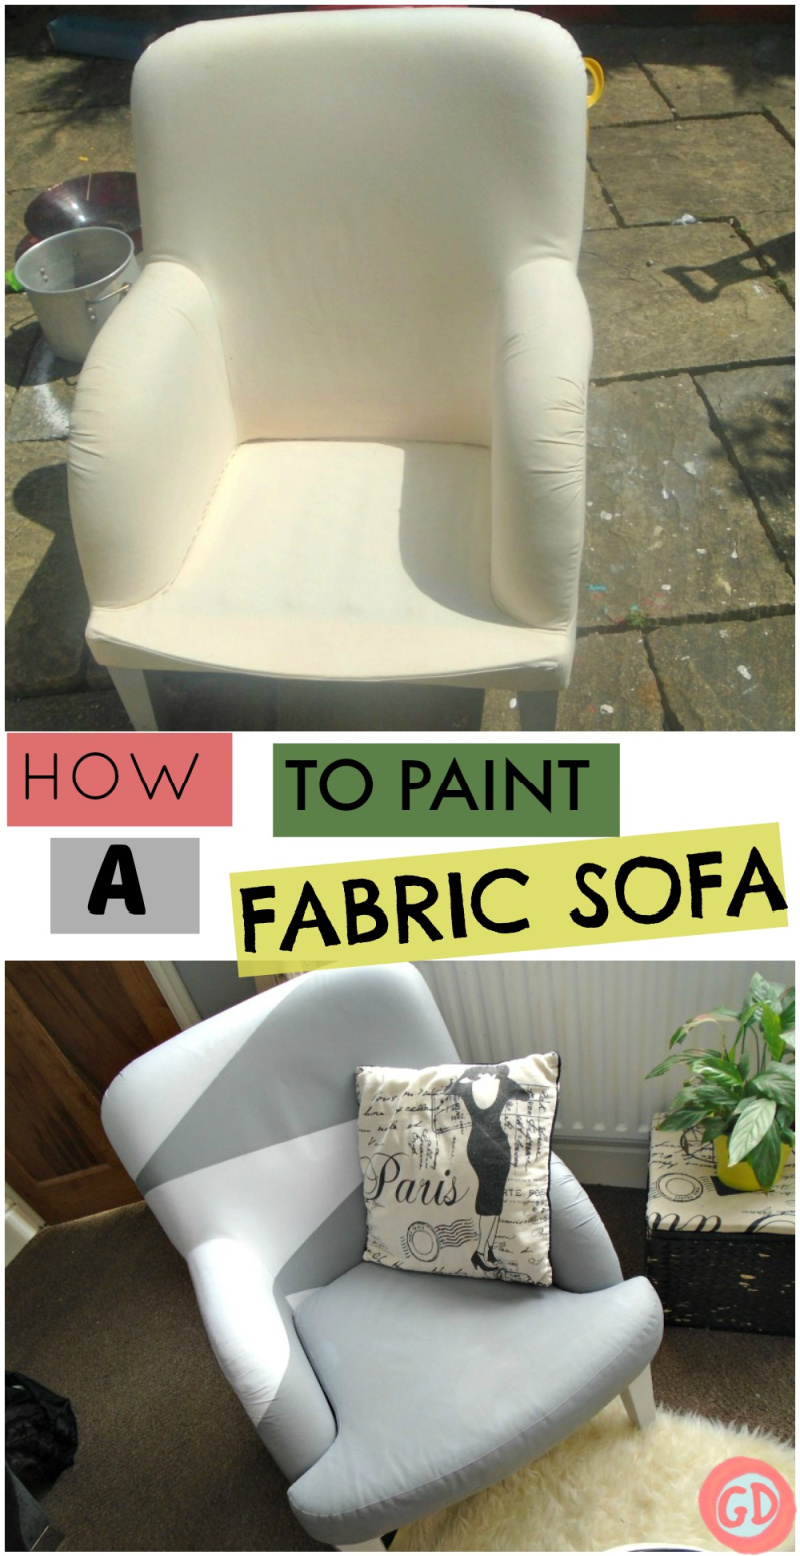 How to Paint a Fabric Sofa Tutorial Before and after Photos